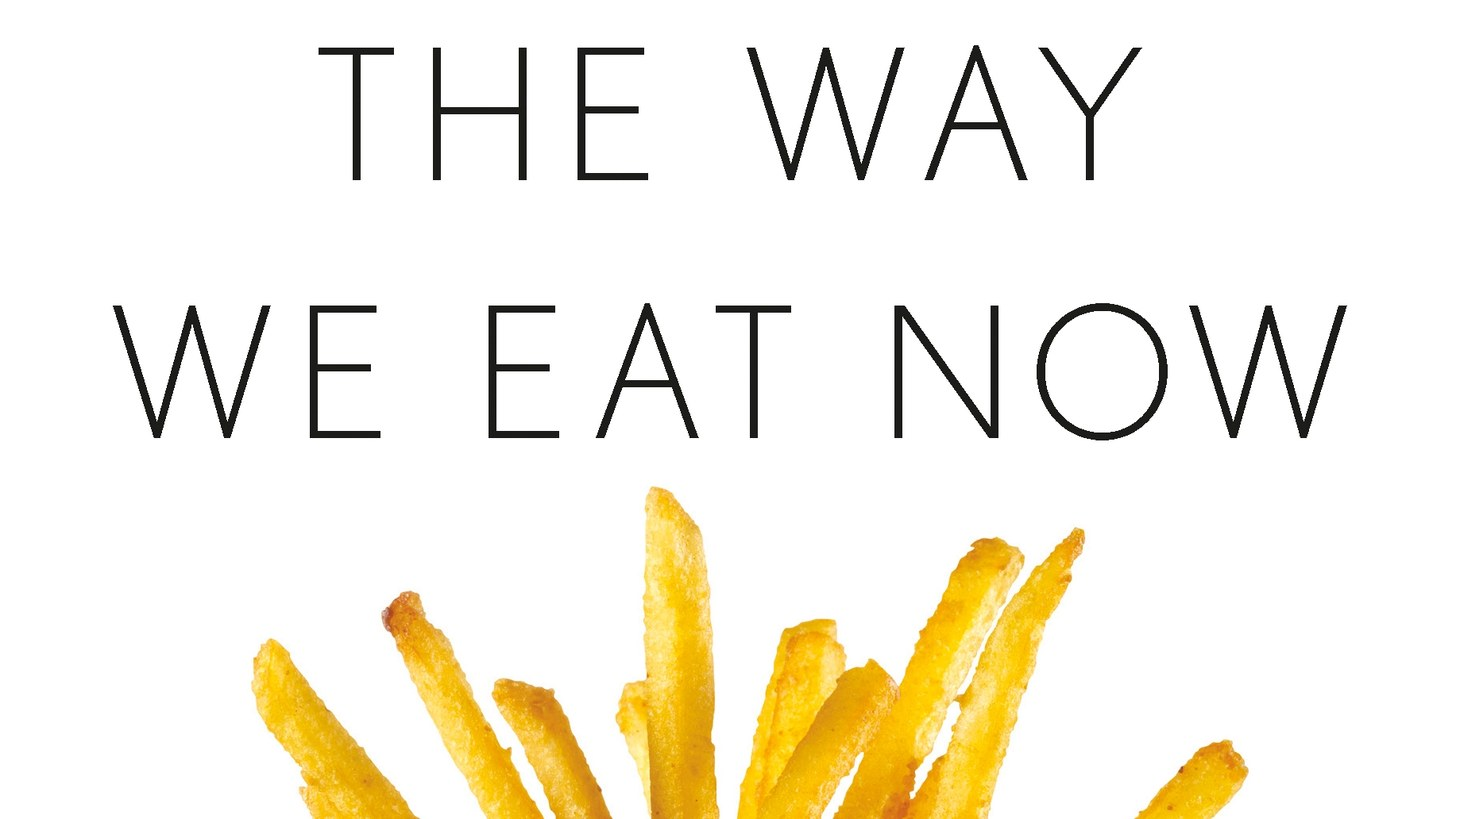 """The front cover of """"The Way We Eat Now: How the Food Revolution Has Transformed Our Lives, Our Bodies, and Our World"""" by Bee Wilson."""